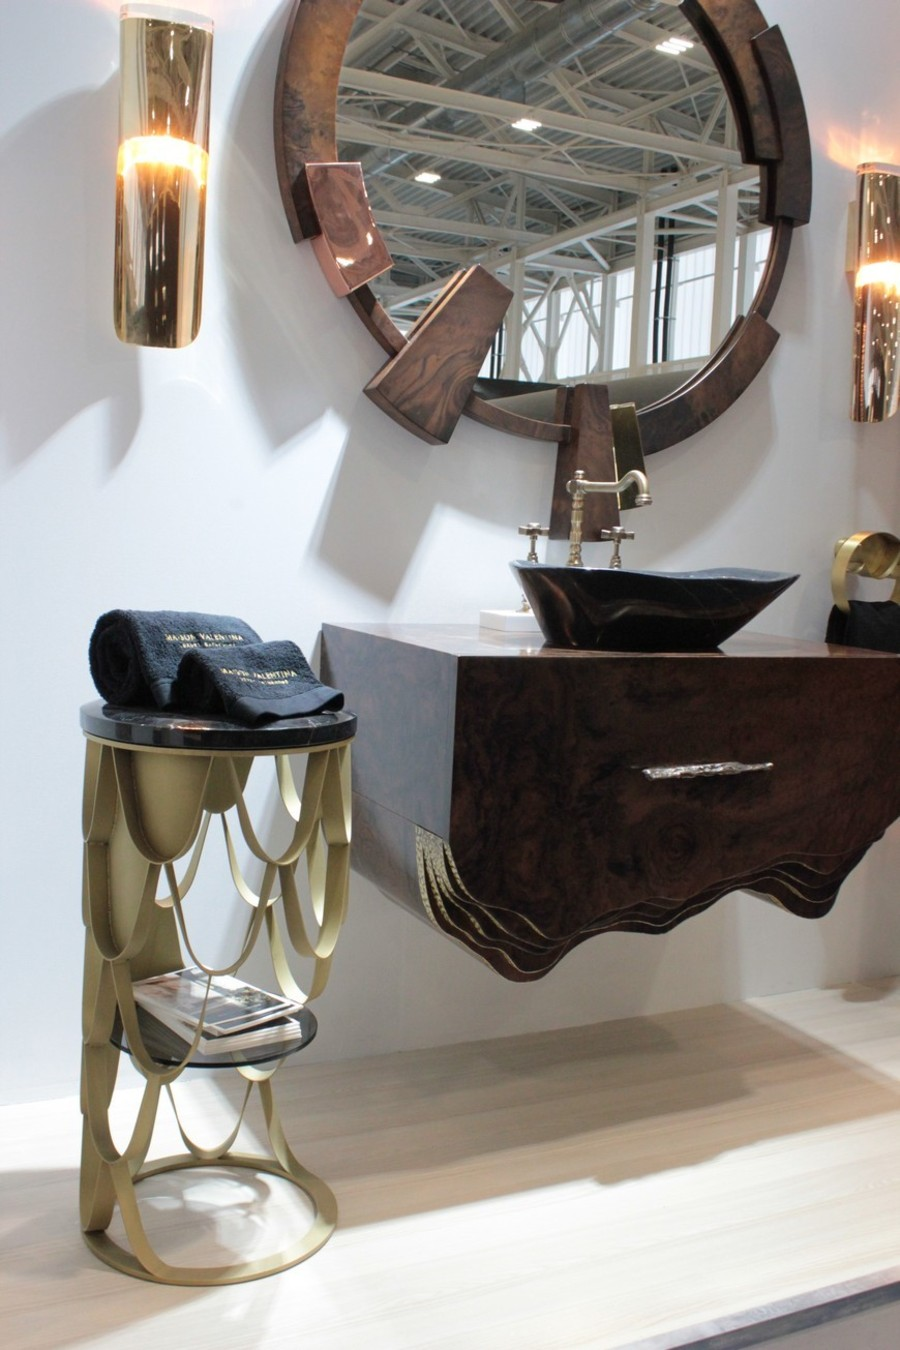 Cersaie 2019 - Highlights from the Luxury Bathroom Event cersaie 2019 Cersaie 2019 – Highlights from the Luxury Bathroom Event Cersaie 2019 Highlights from the Luxury Bathroom Event 6